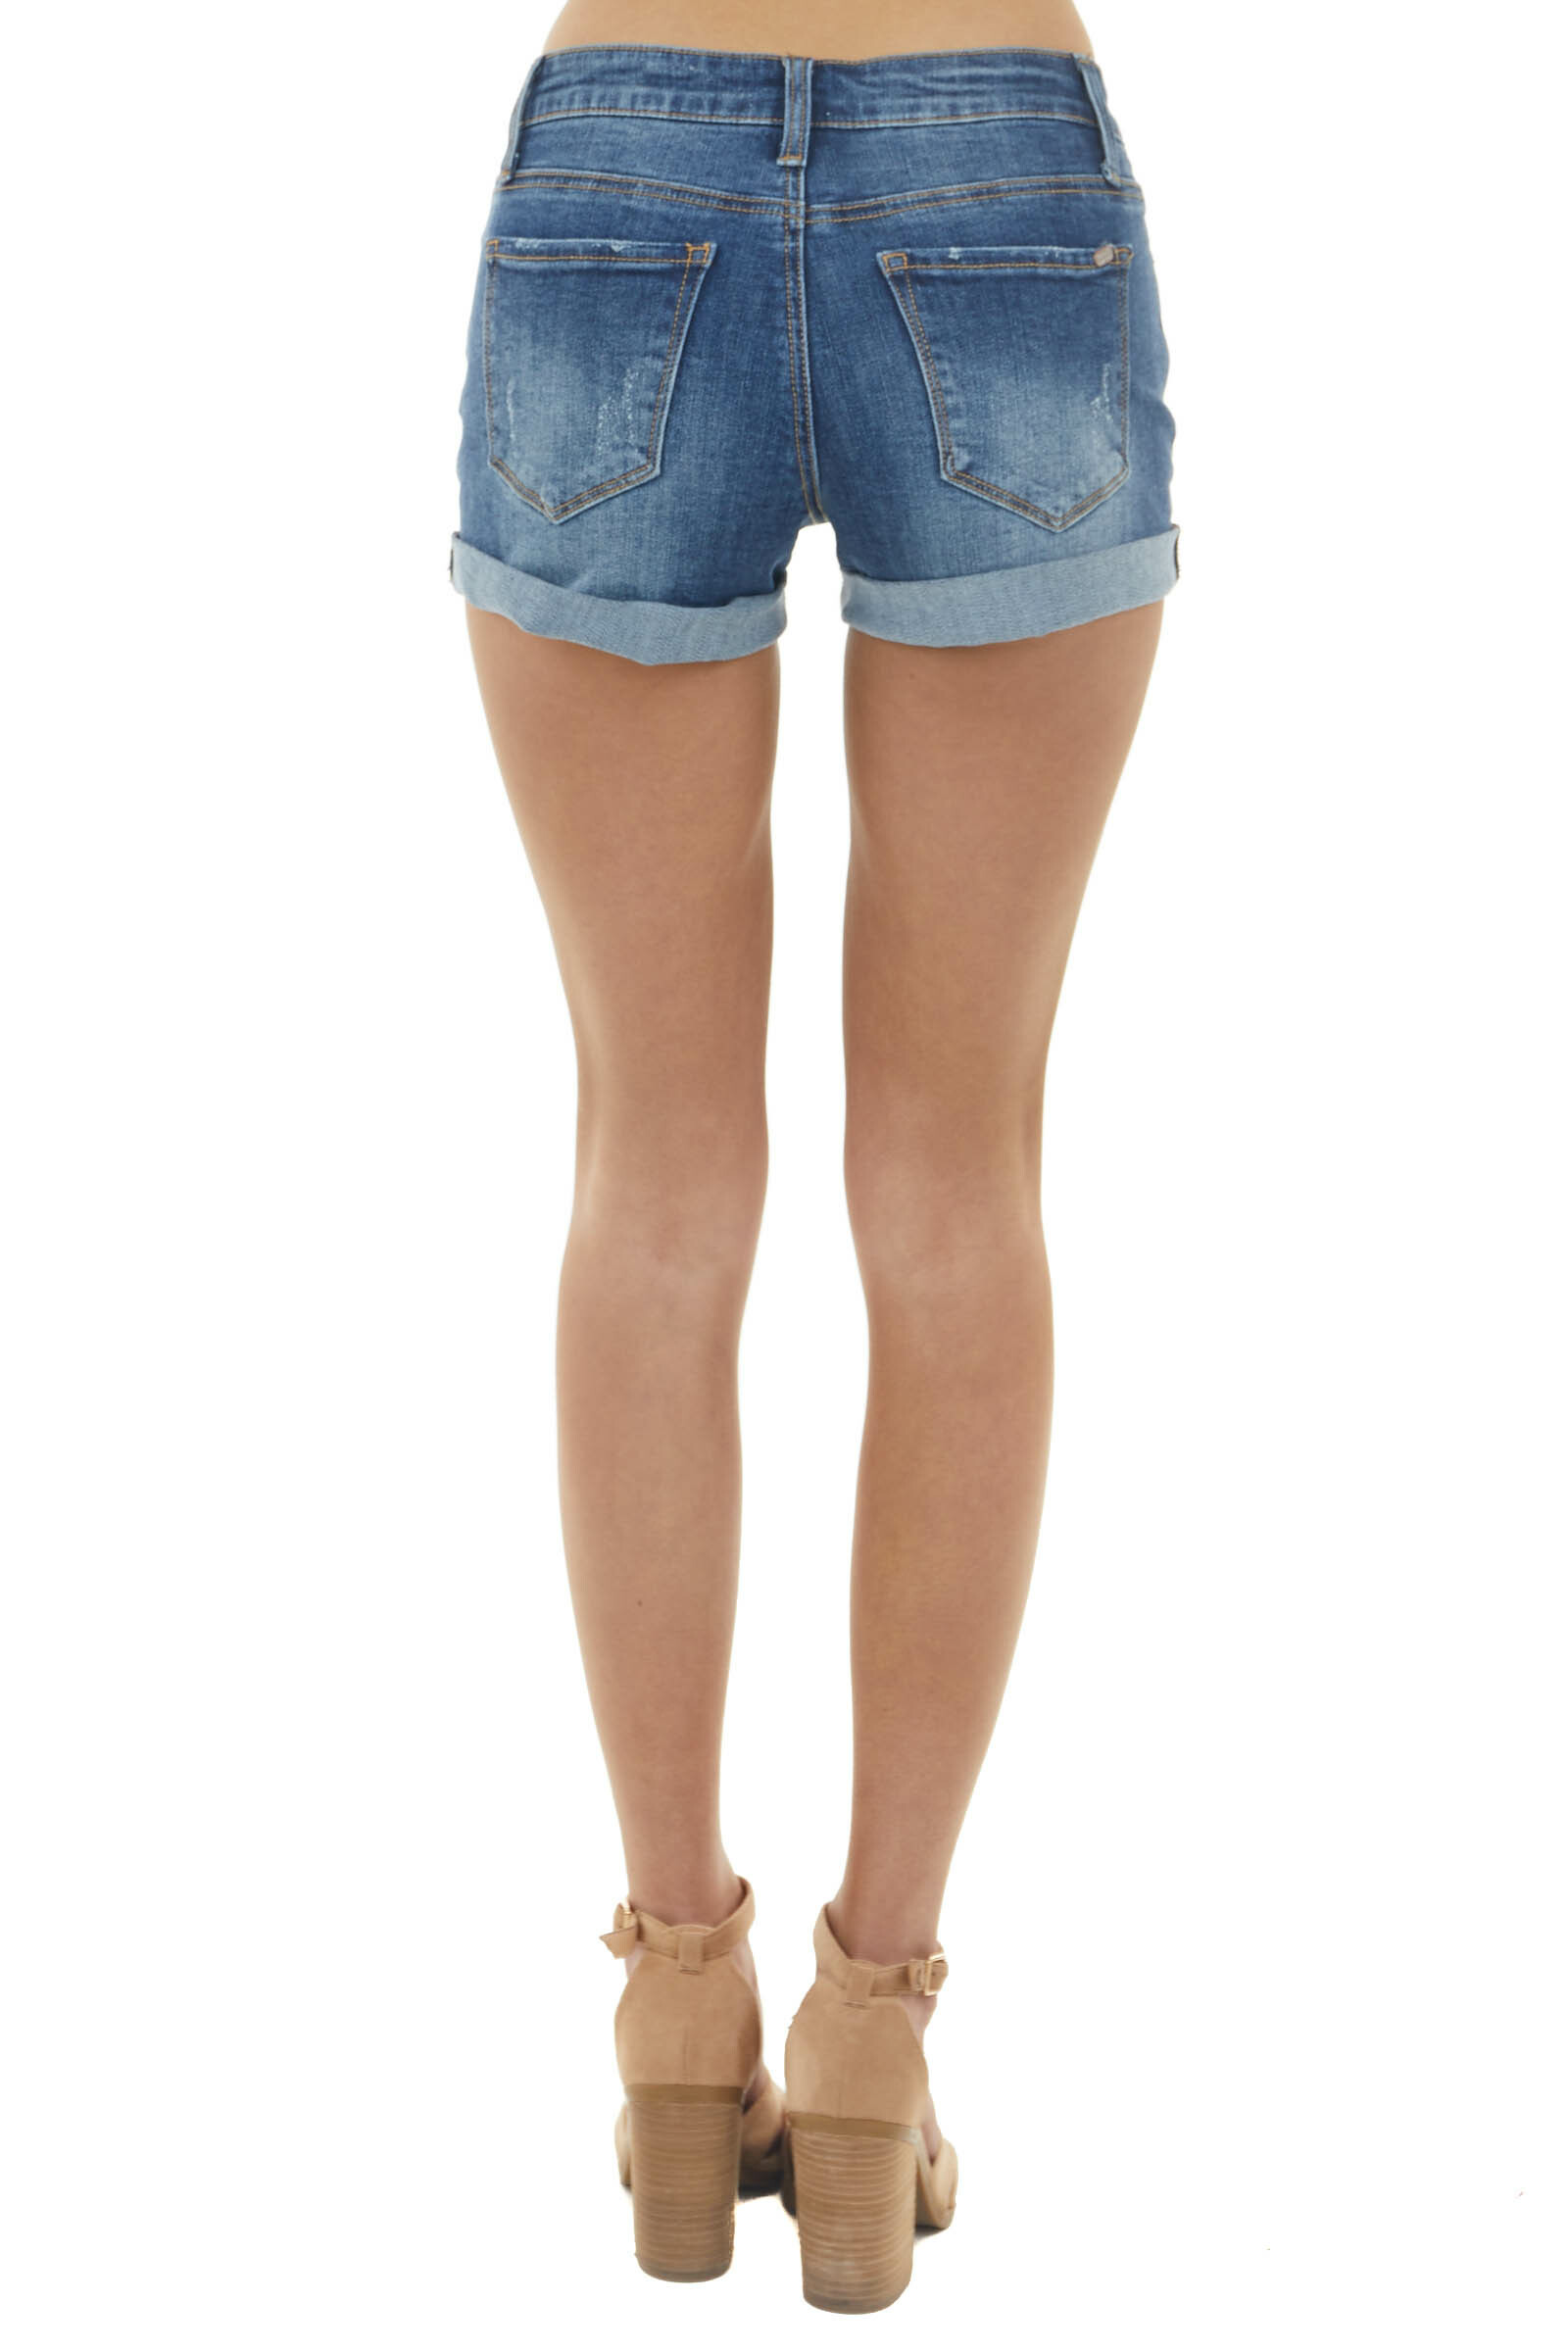 Dark Wash Mid Rise Denim Shorts with Rolled Cuffs